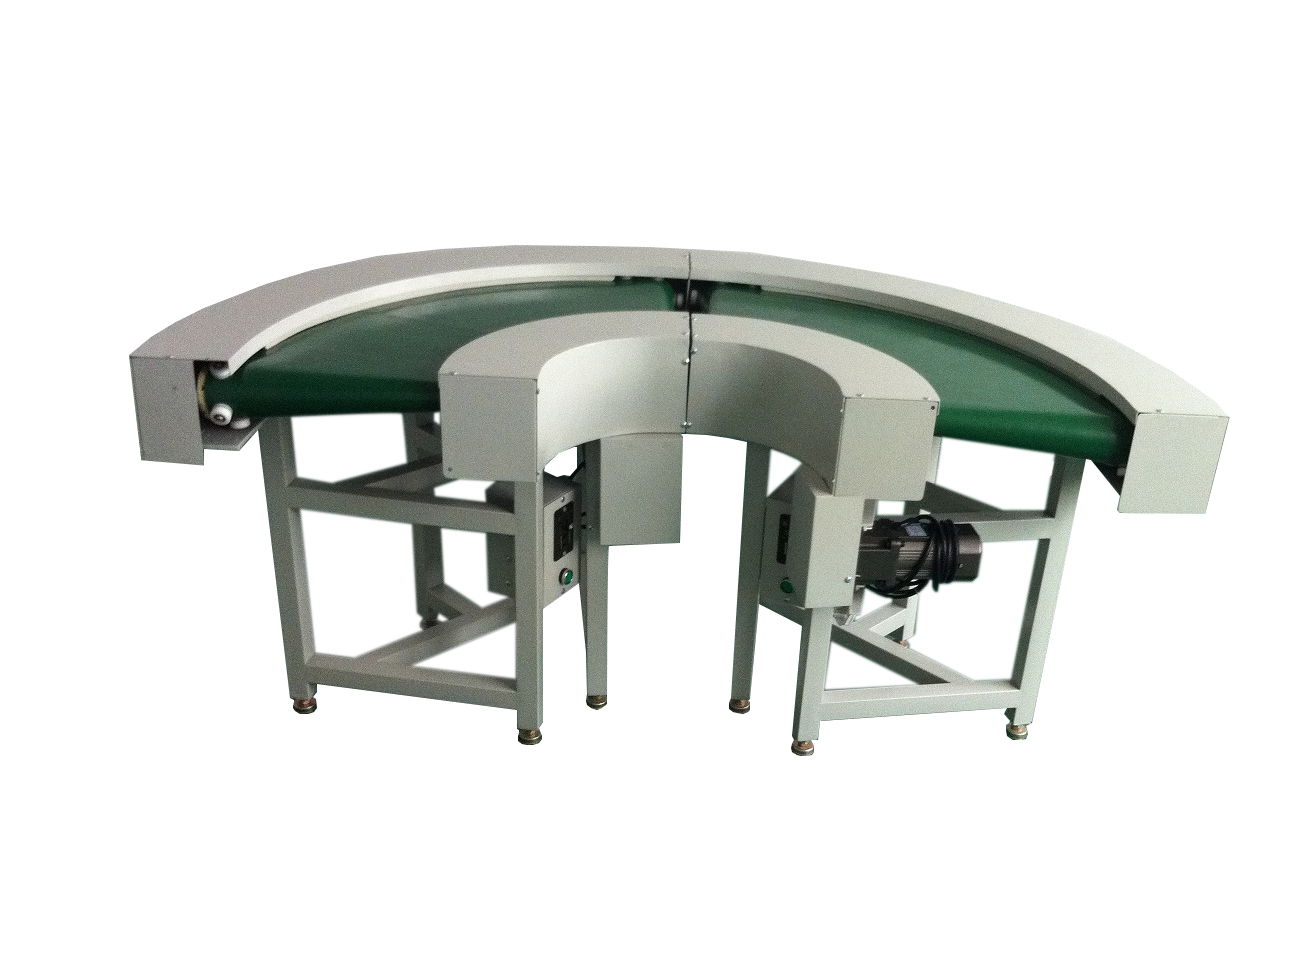 90 Degree Curve Small Mini Sushi Belt Conveyor System With CE Certification